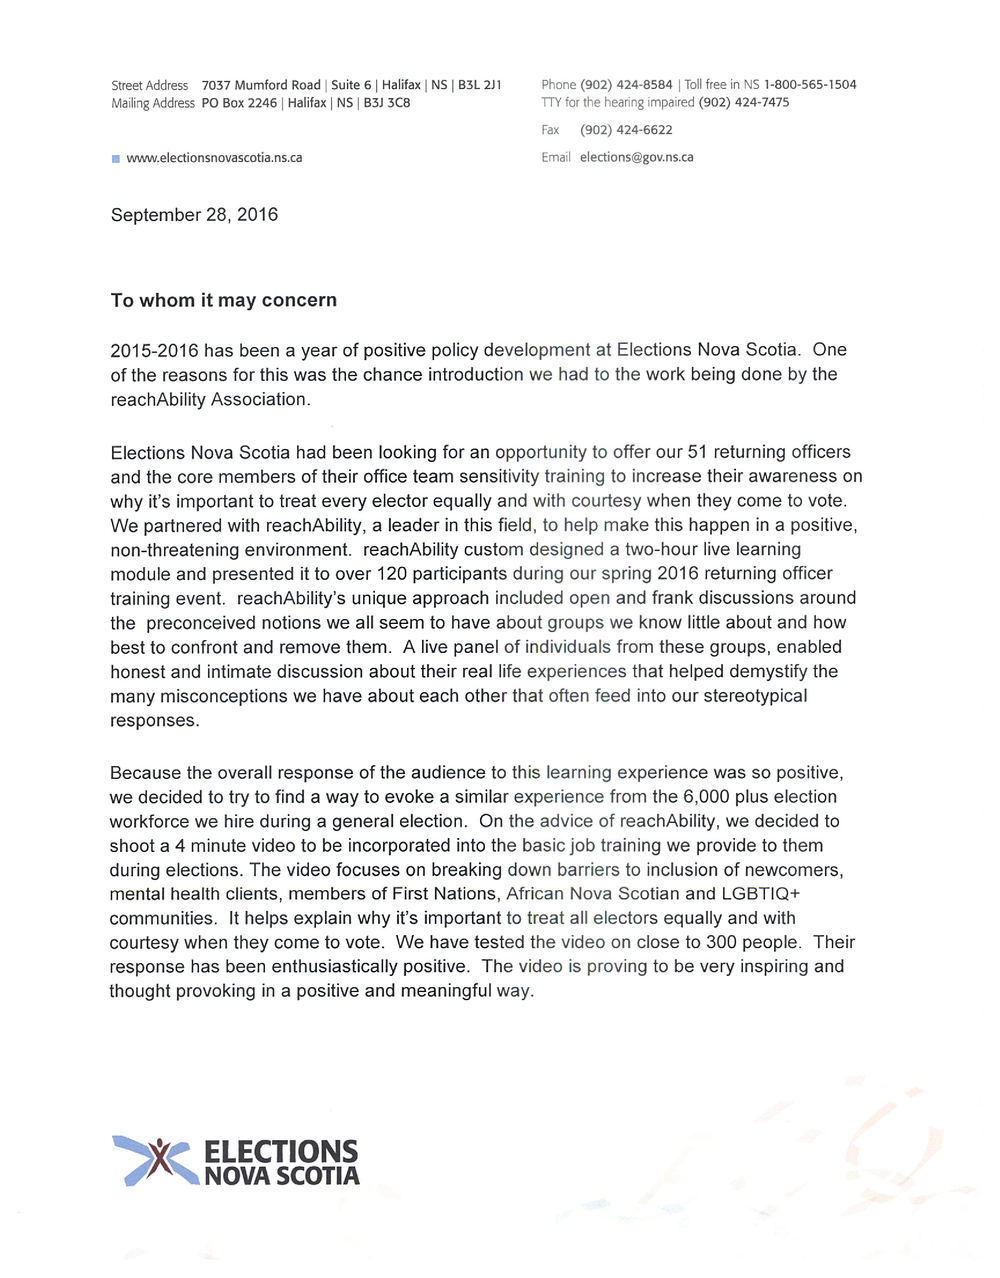 Letter-of-Reference-reachAbility-Sept-28-2016-Page1.png